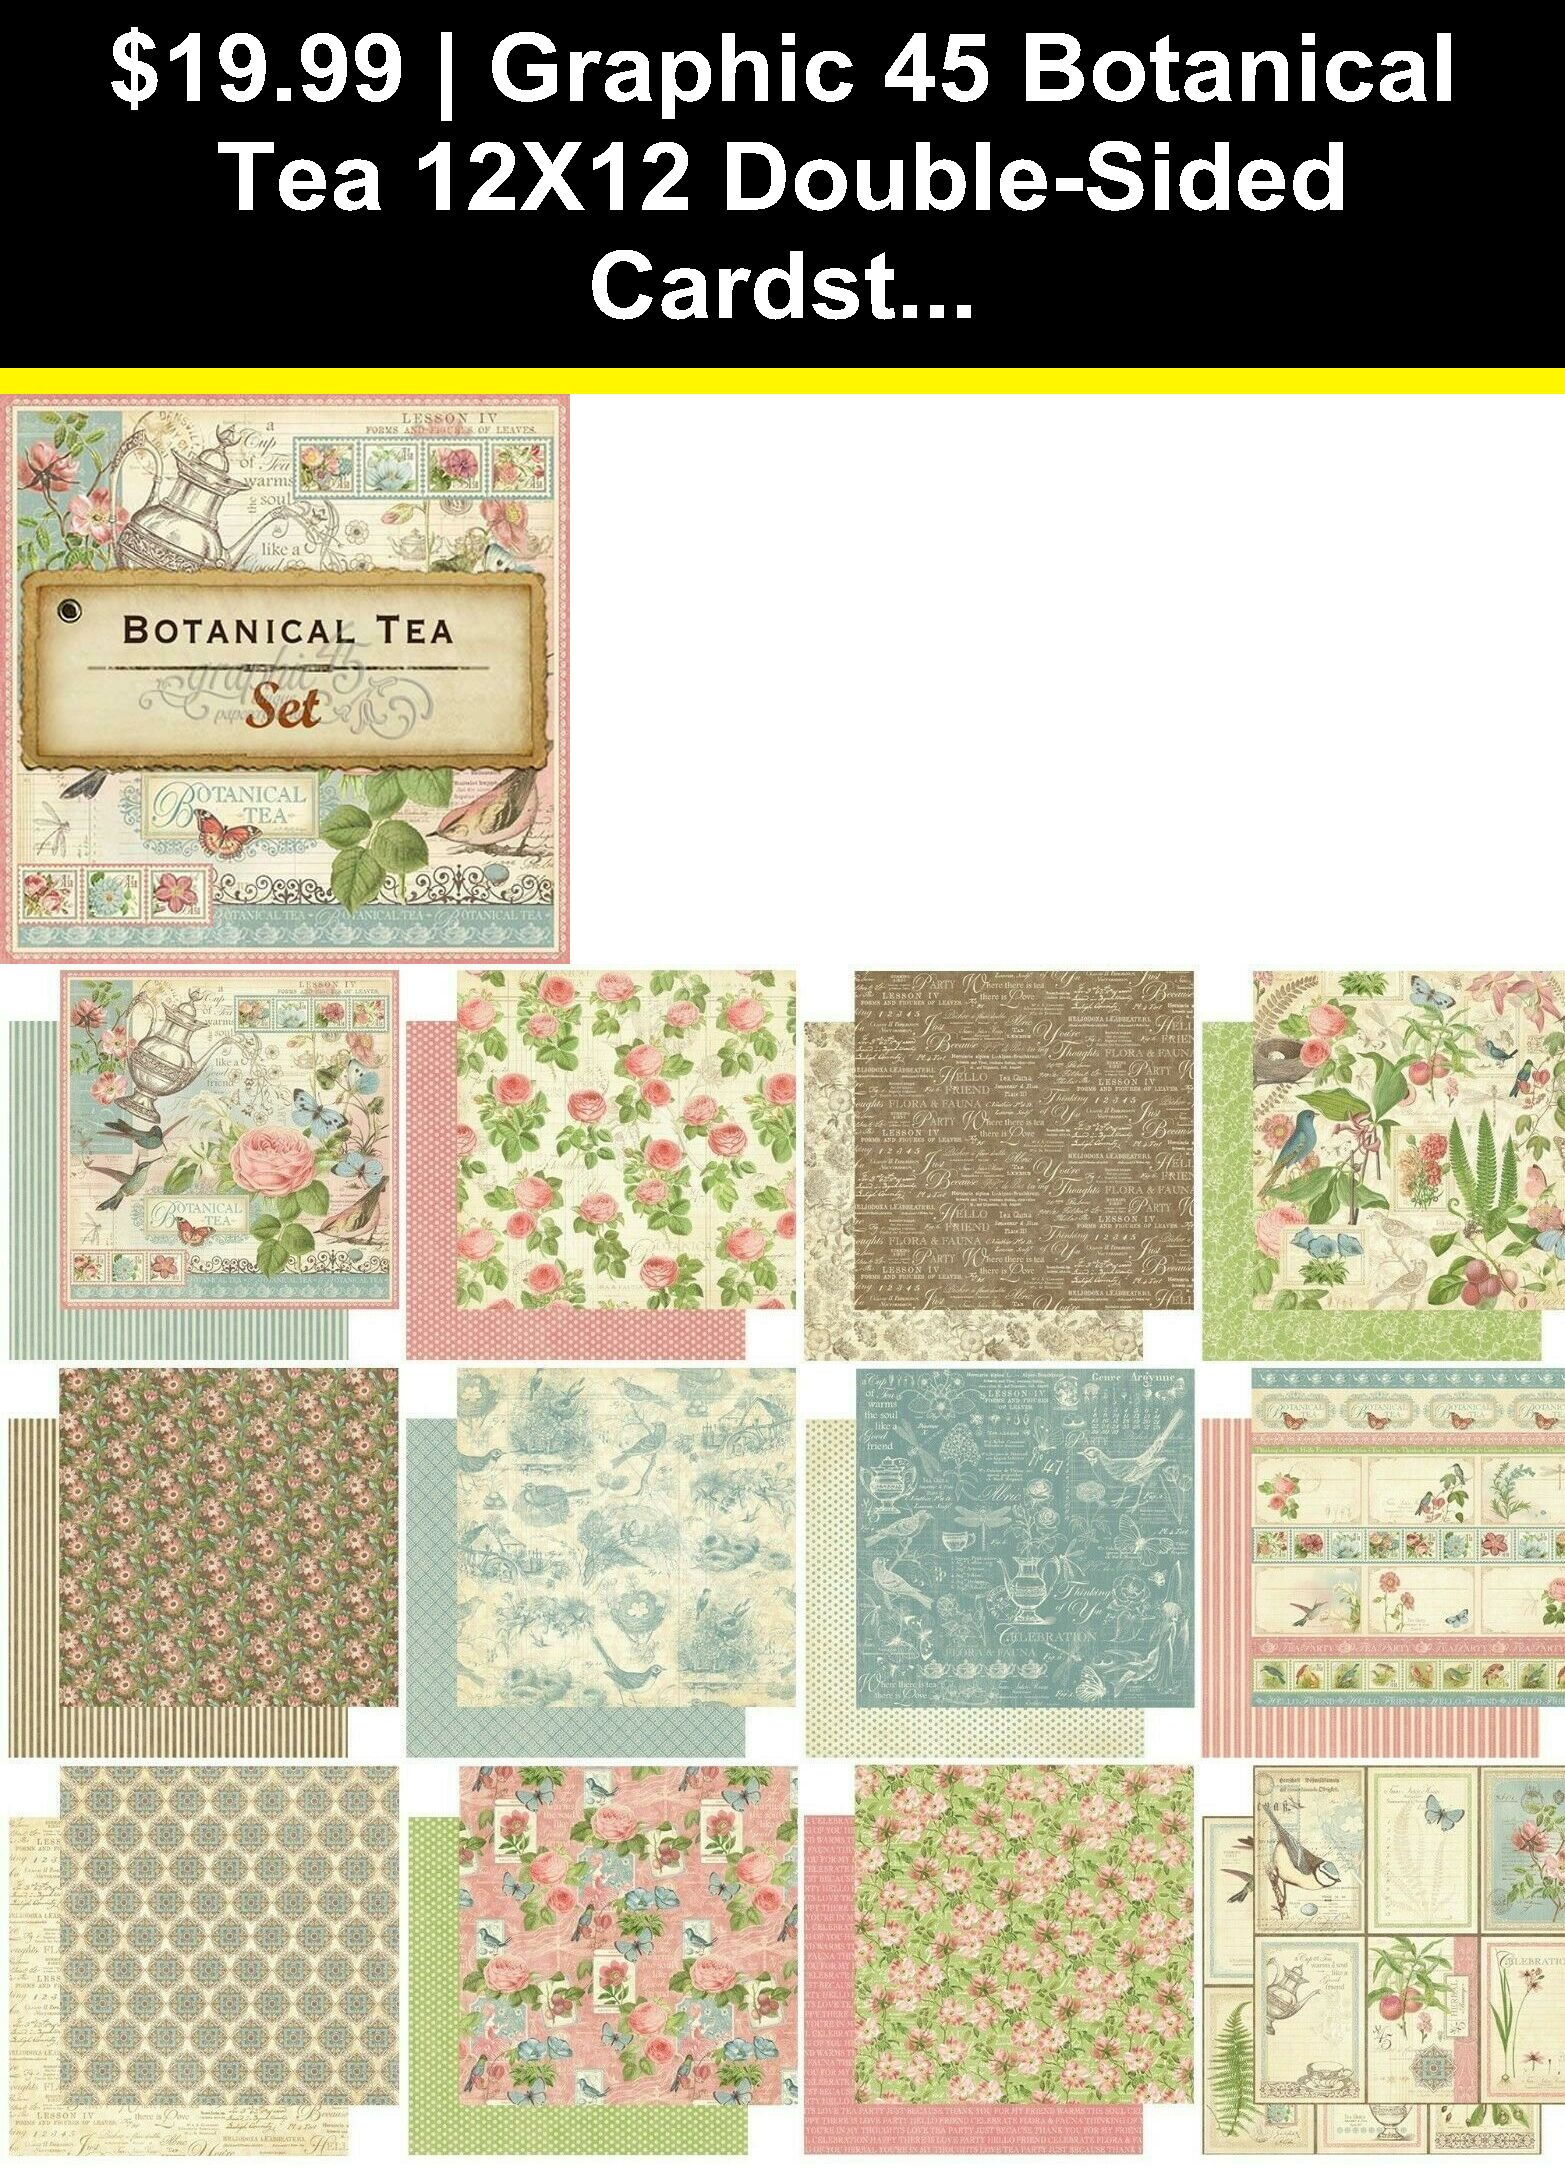 Cardstock 122662 Graphic 45 Botanical Tea 12x12 Double Sided Cardstock Paper 12 Sheet Set Buy It Now Only 19 99 With Images Graphic 45 Cardstock Paper Botanical Tea